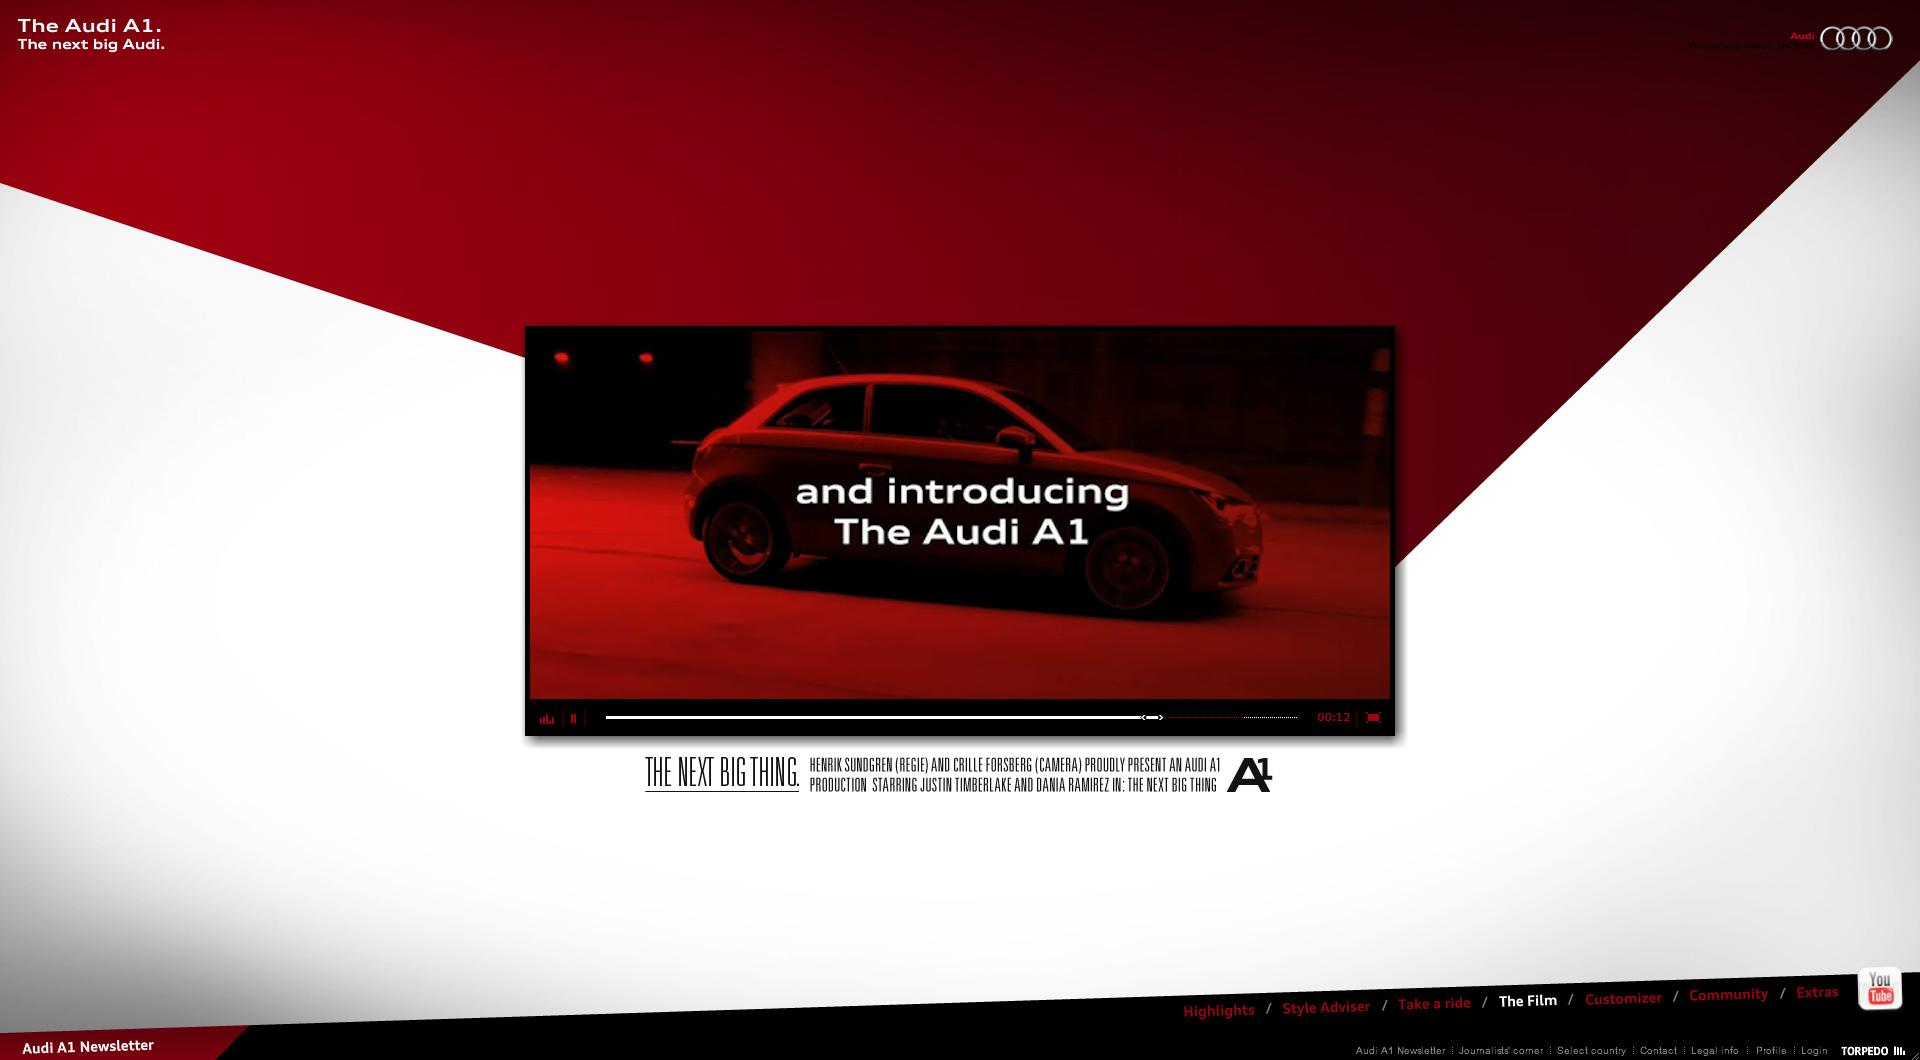 Audi Digital Ad -  The next big thing